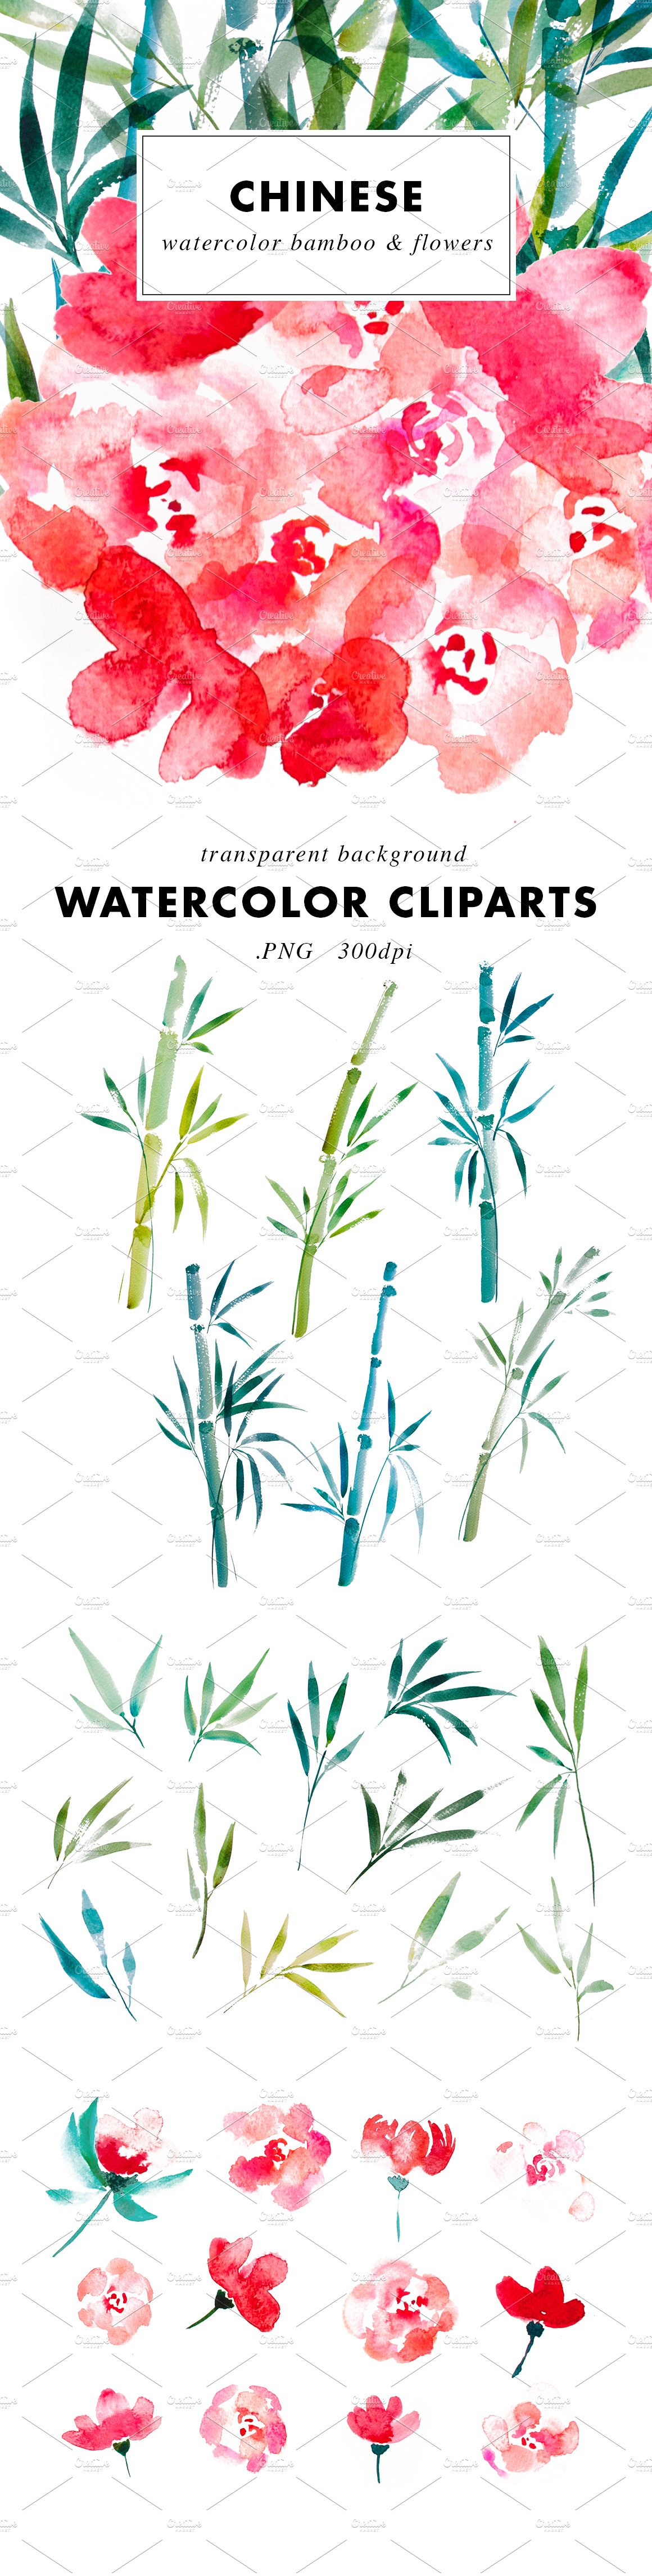 chinese watercolor flowers bamboo illustrations creative market